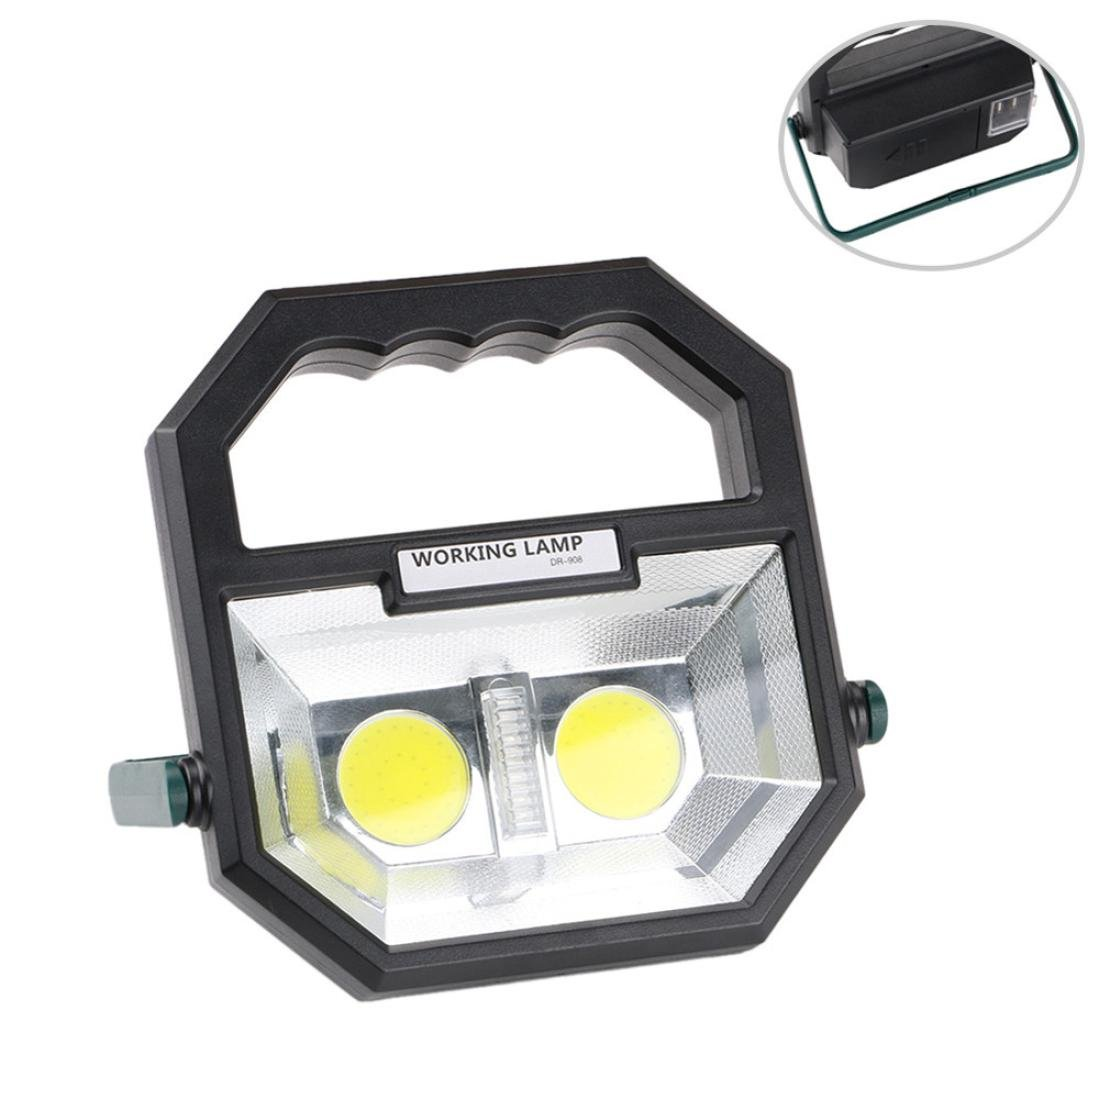 Liping LED Portable SMD Working Light Car Repair Auto Inspection Lamp COB Suitable for Mountain Climbing, Camping, Fishing, Outdoor Sports (A)